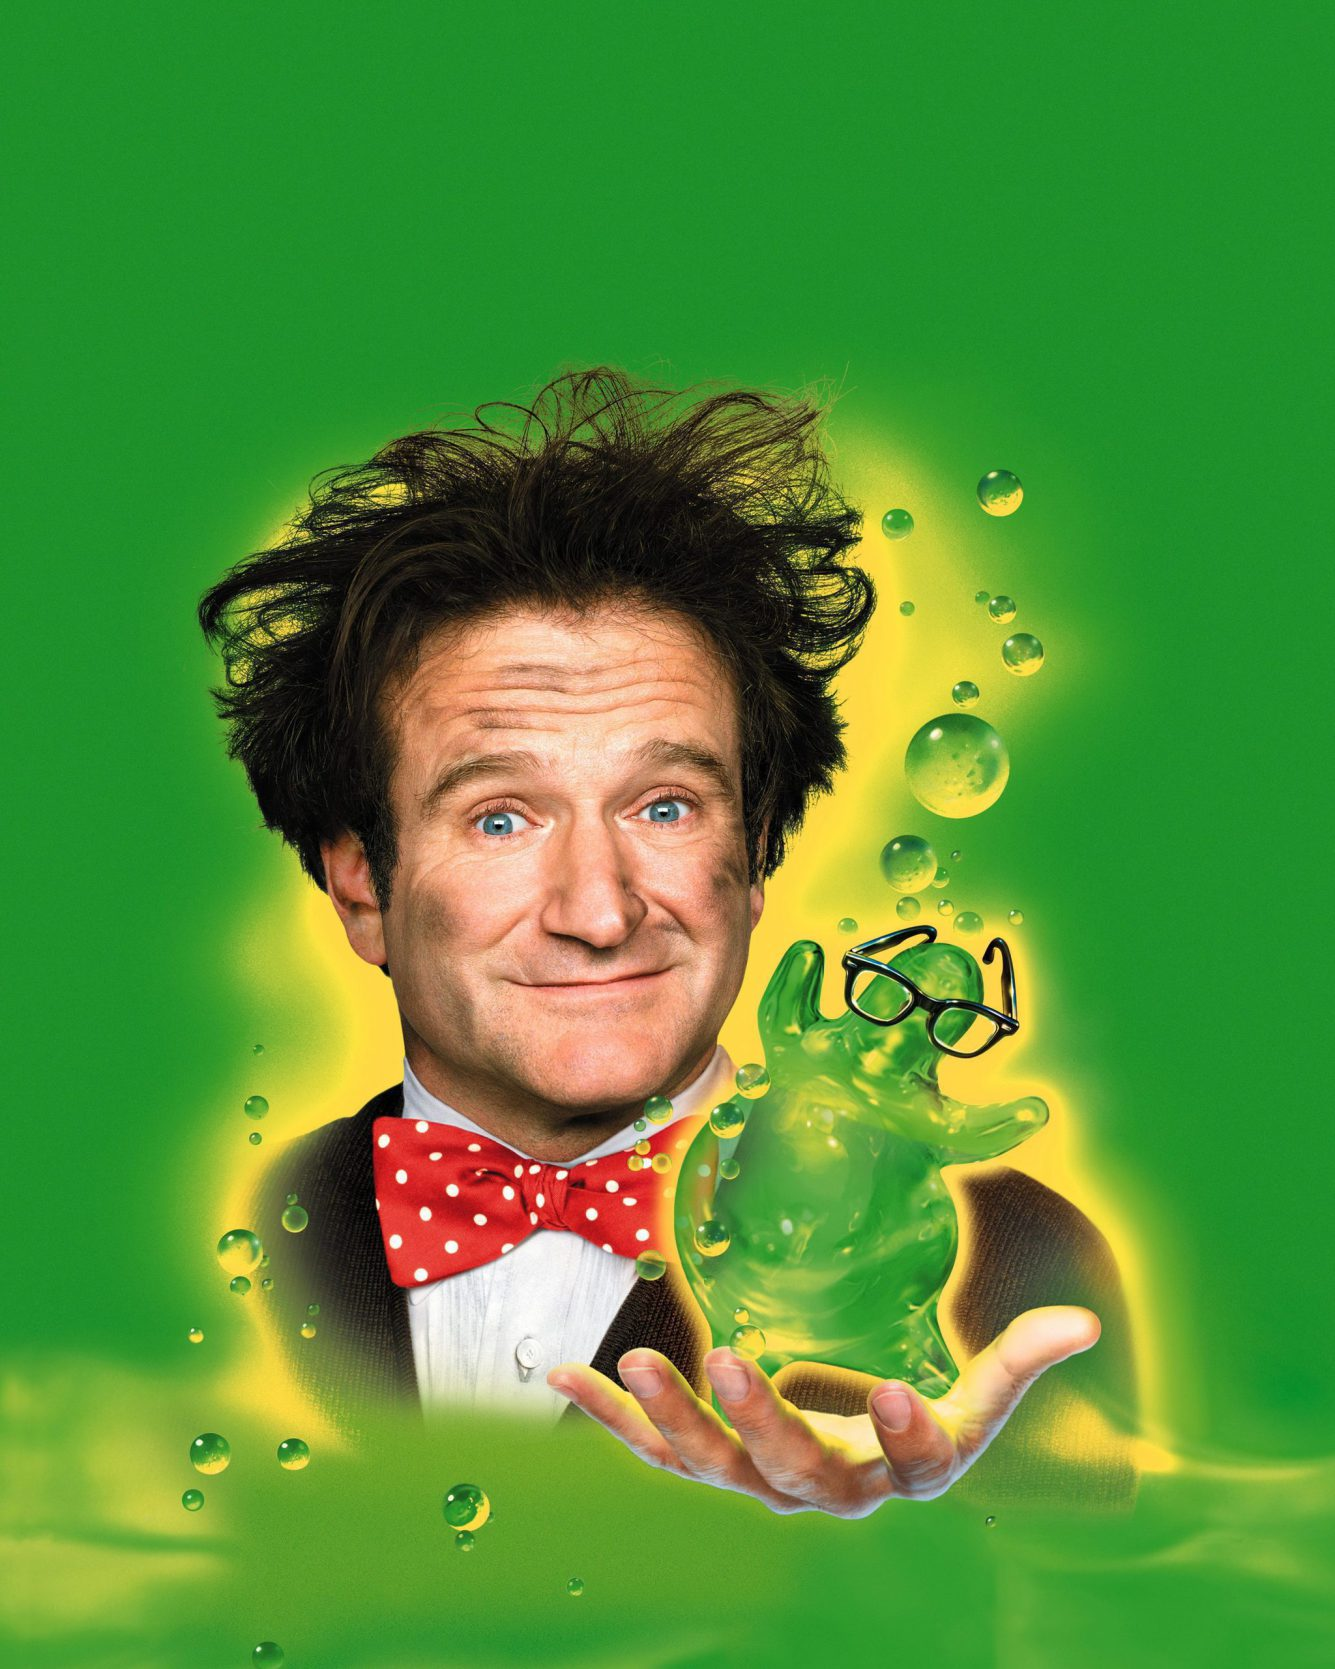 Flubber robin williams 30952881 2048 2560